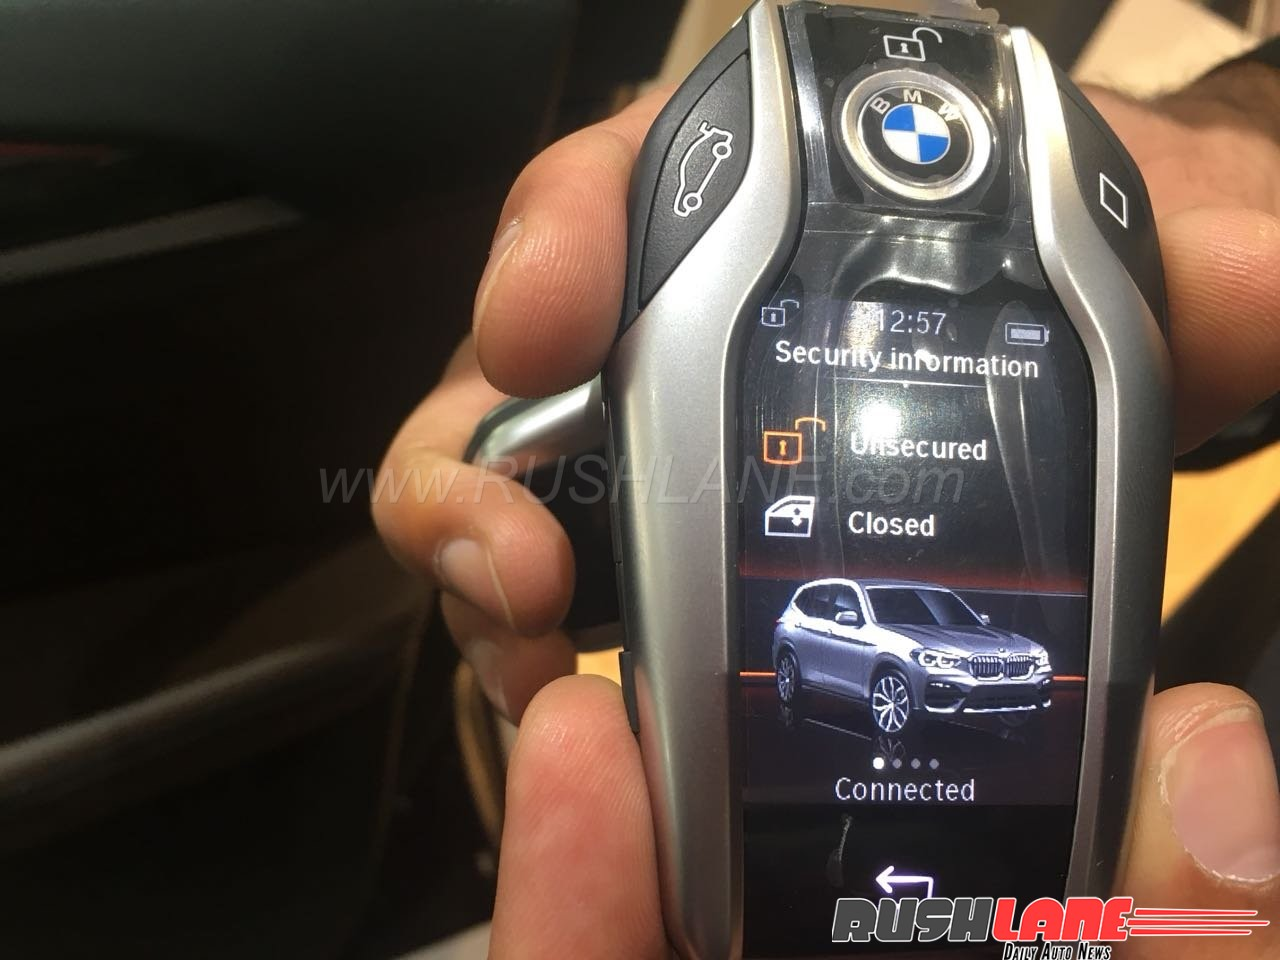 Blazing BMW India sales for Q1 2018 - 2377 cars sold